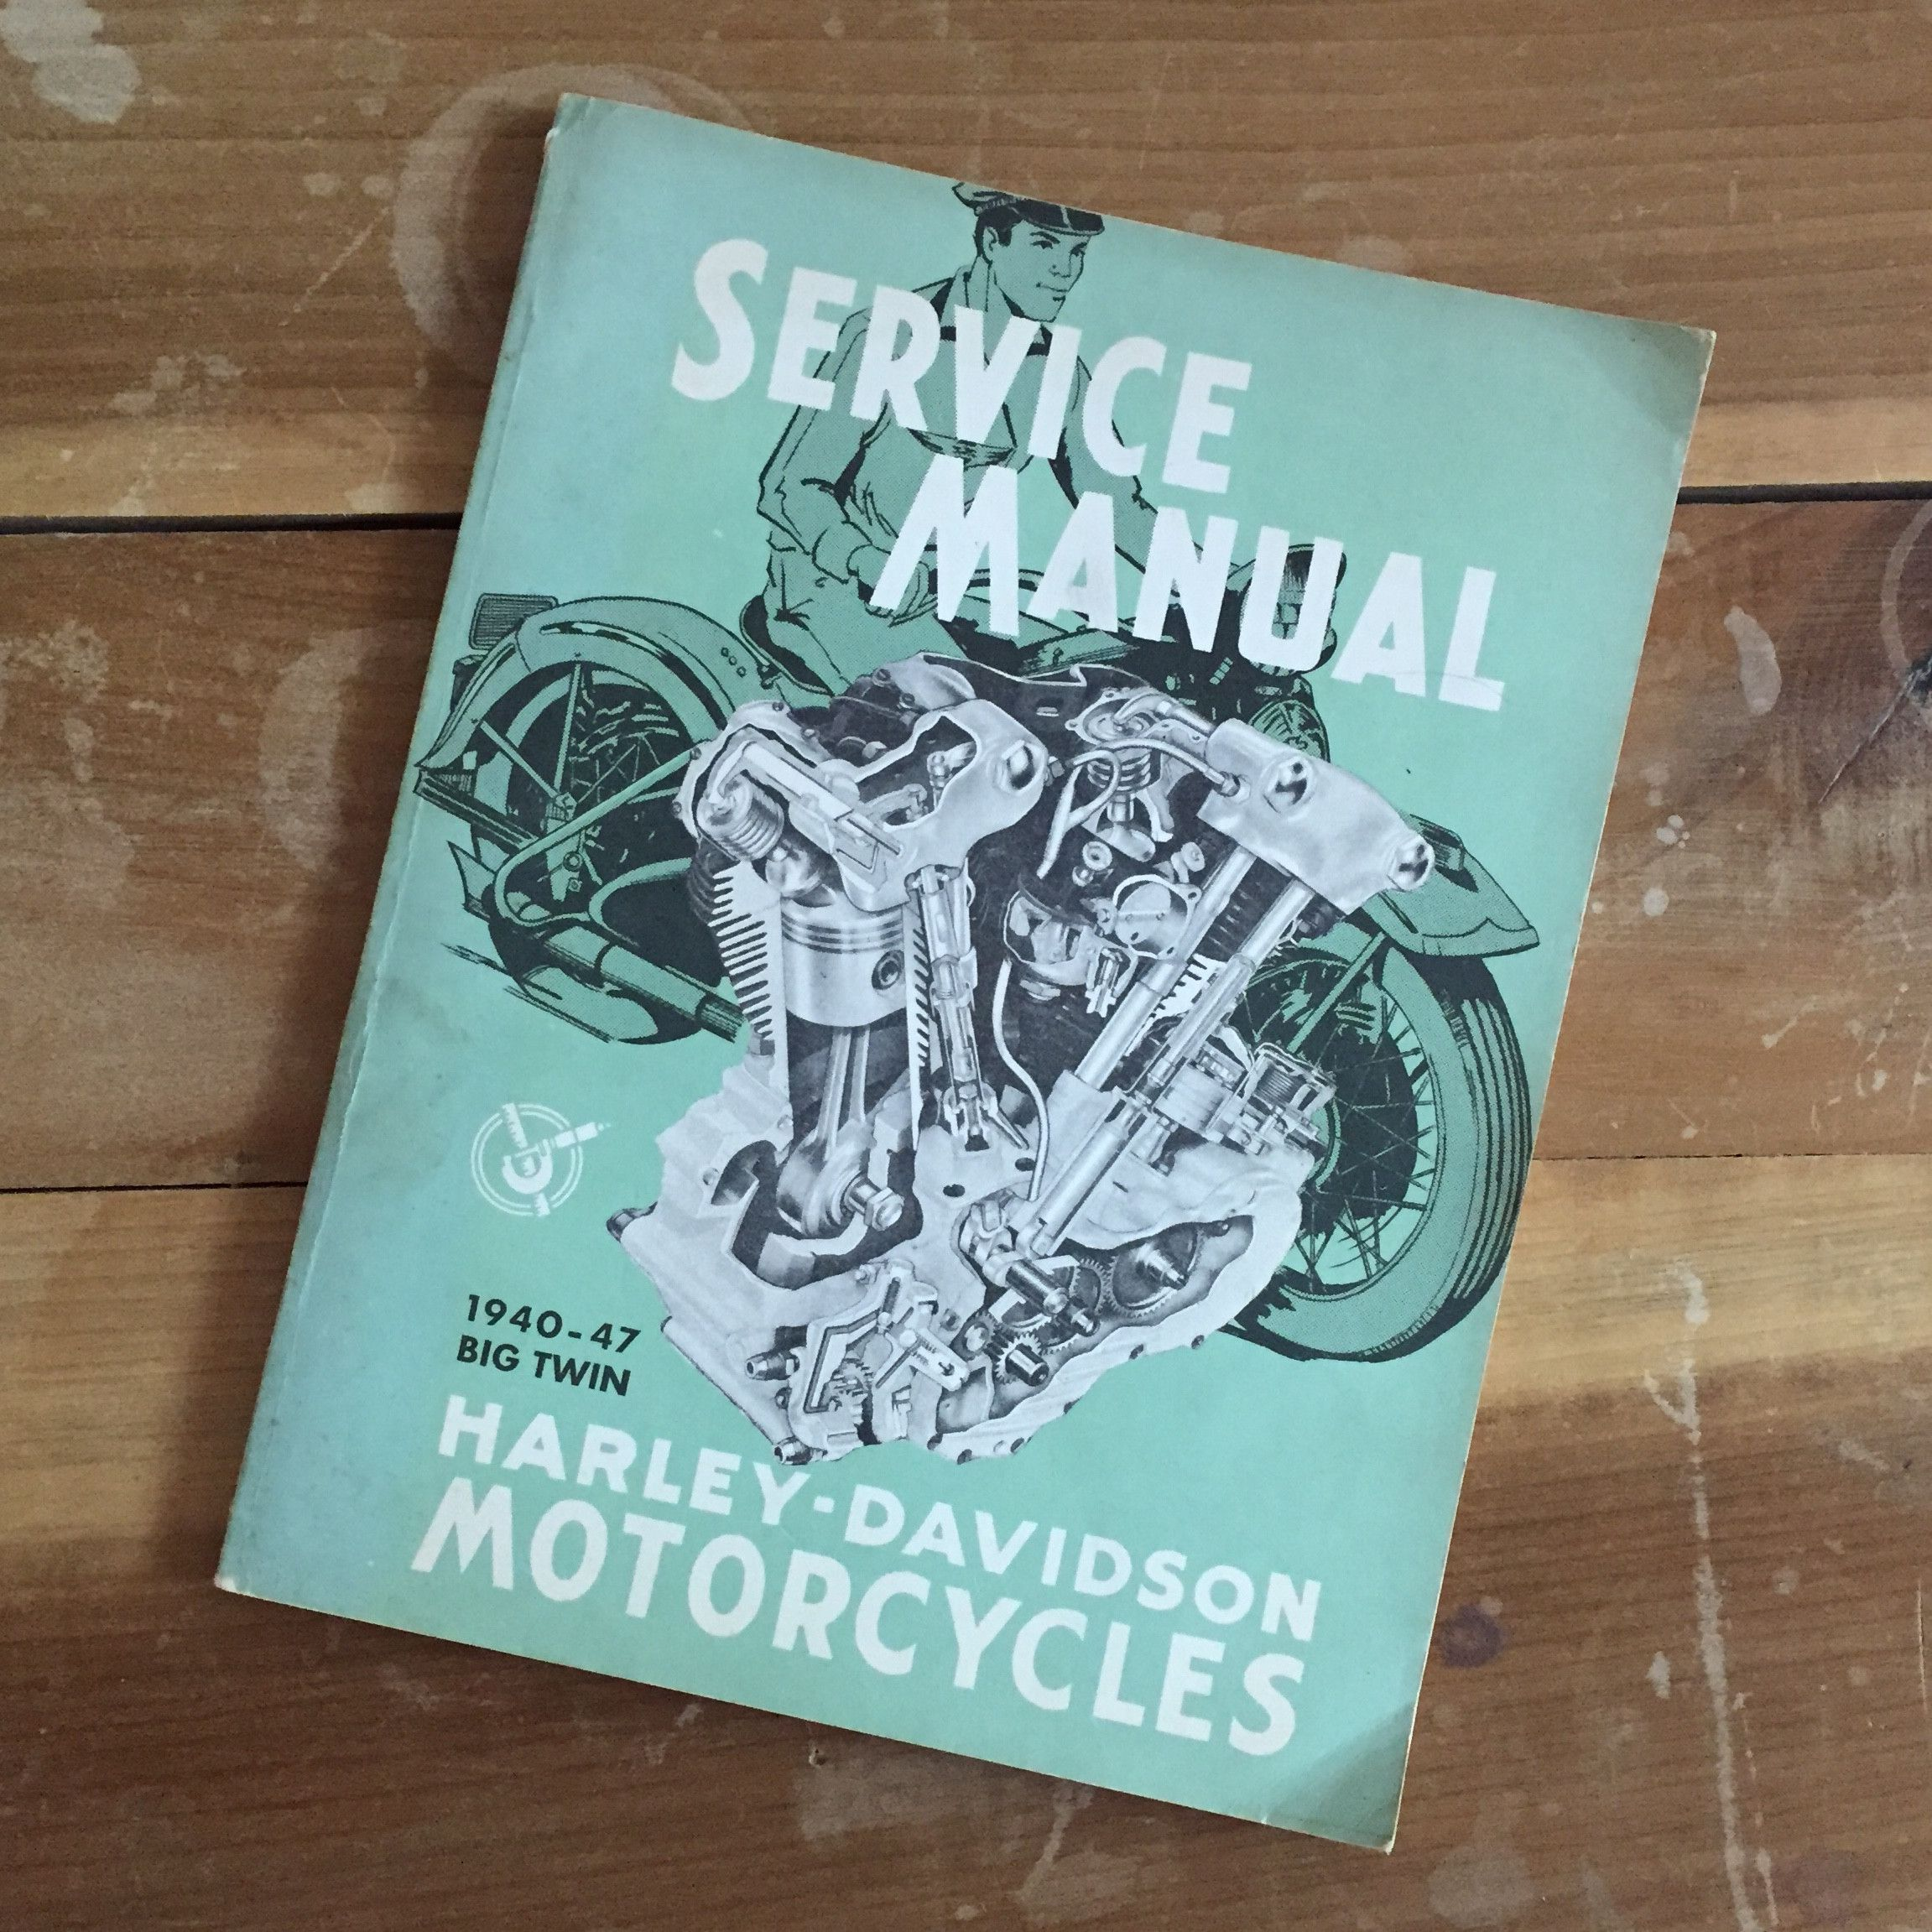 A TSY VINTAGE GOODS, 1940-1947 BIG TWIN HARLEY-DAVIDSON MOTORCYCLES SERVICE  MANUAL